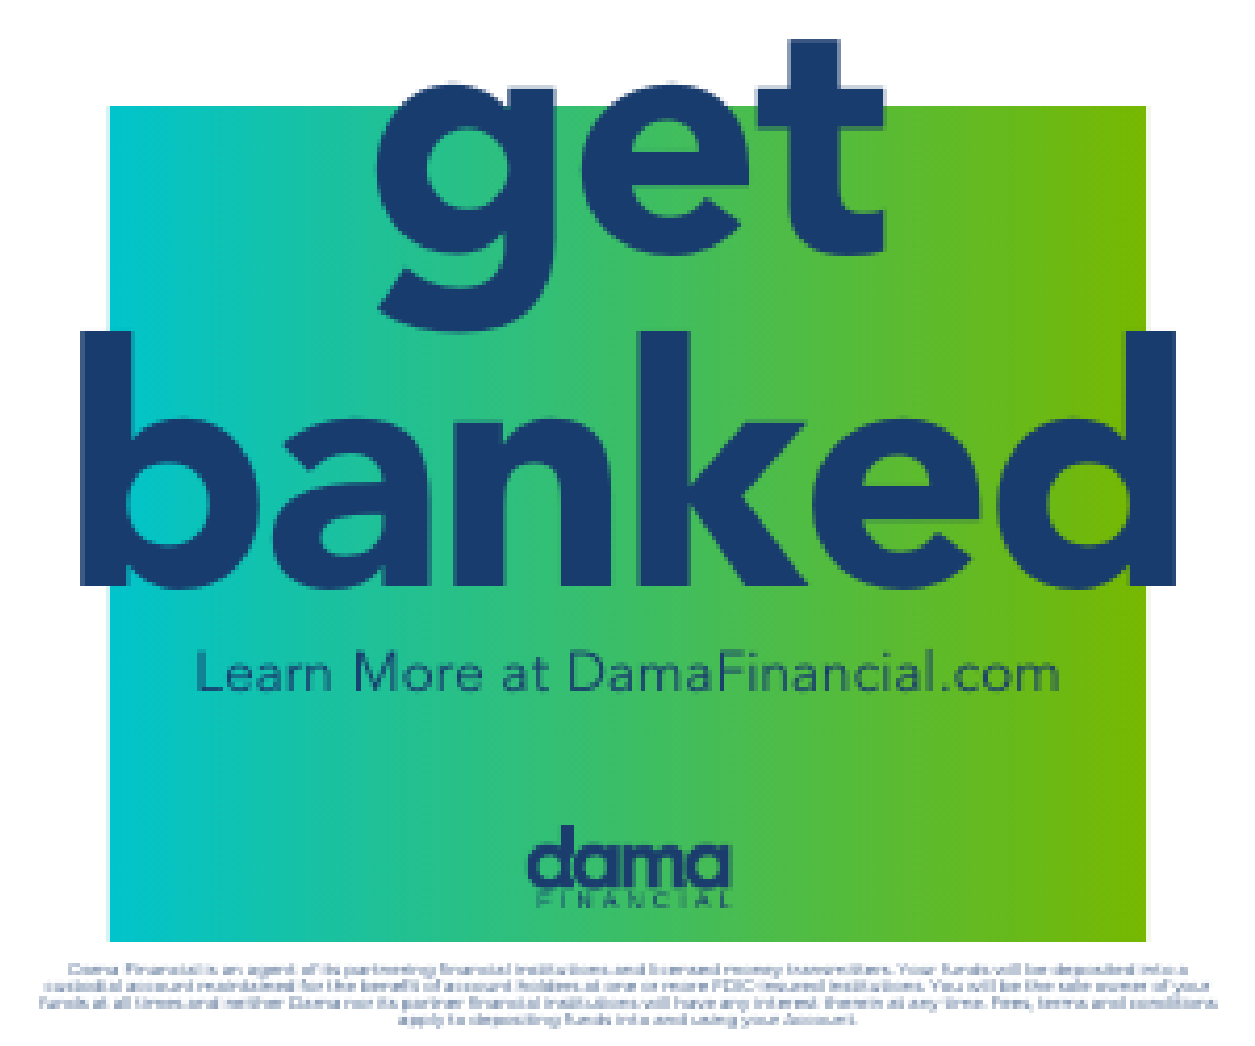 Dama_Finance_Ad.png